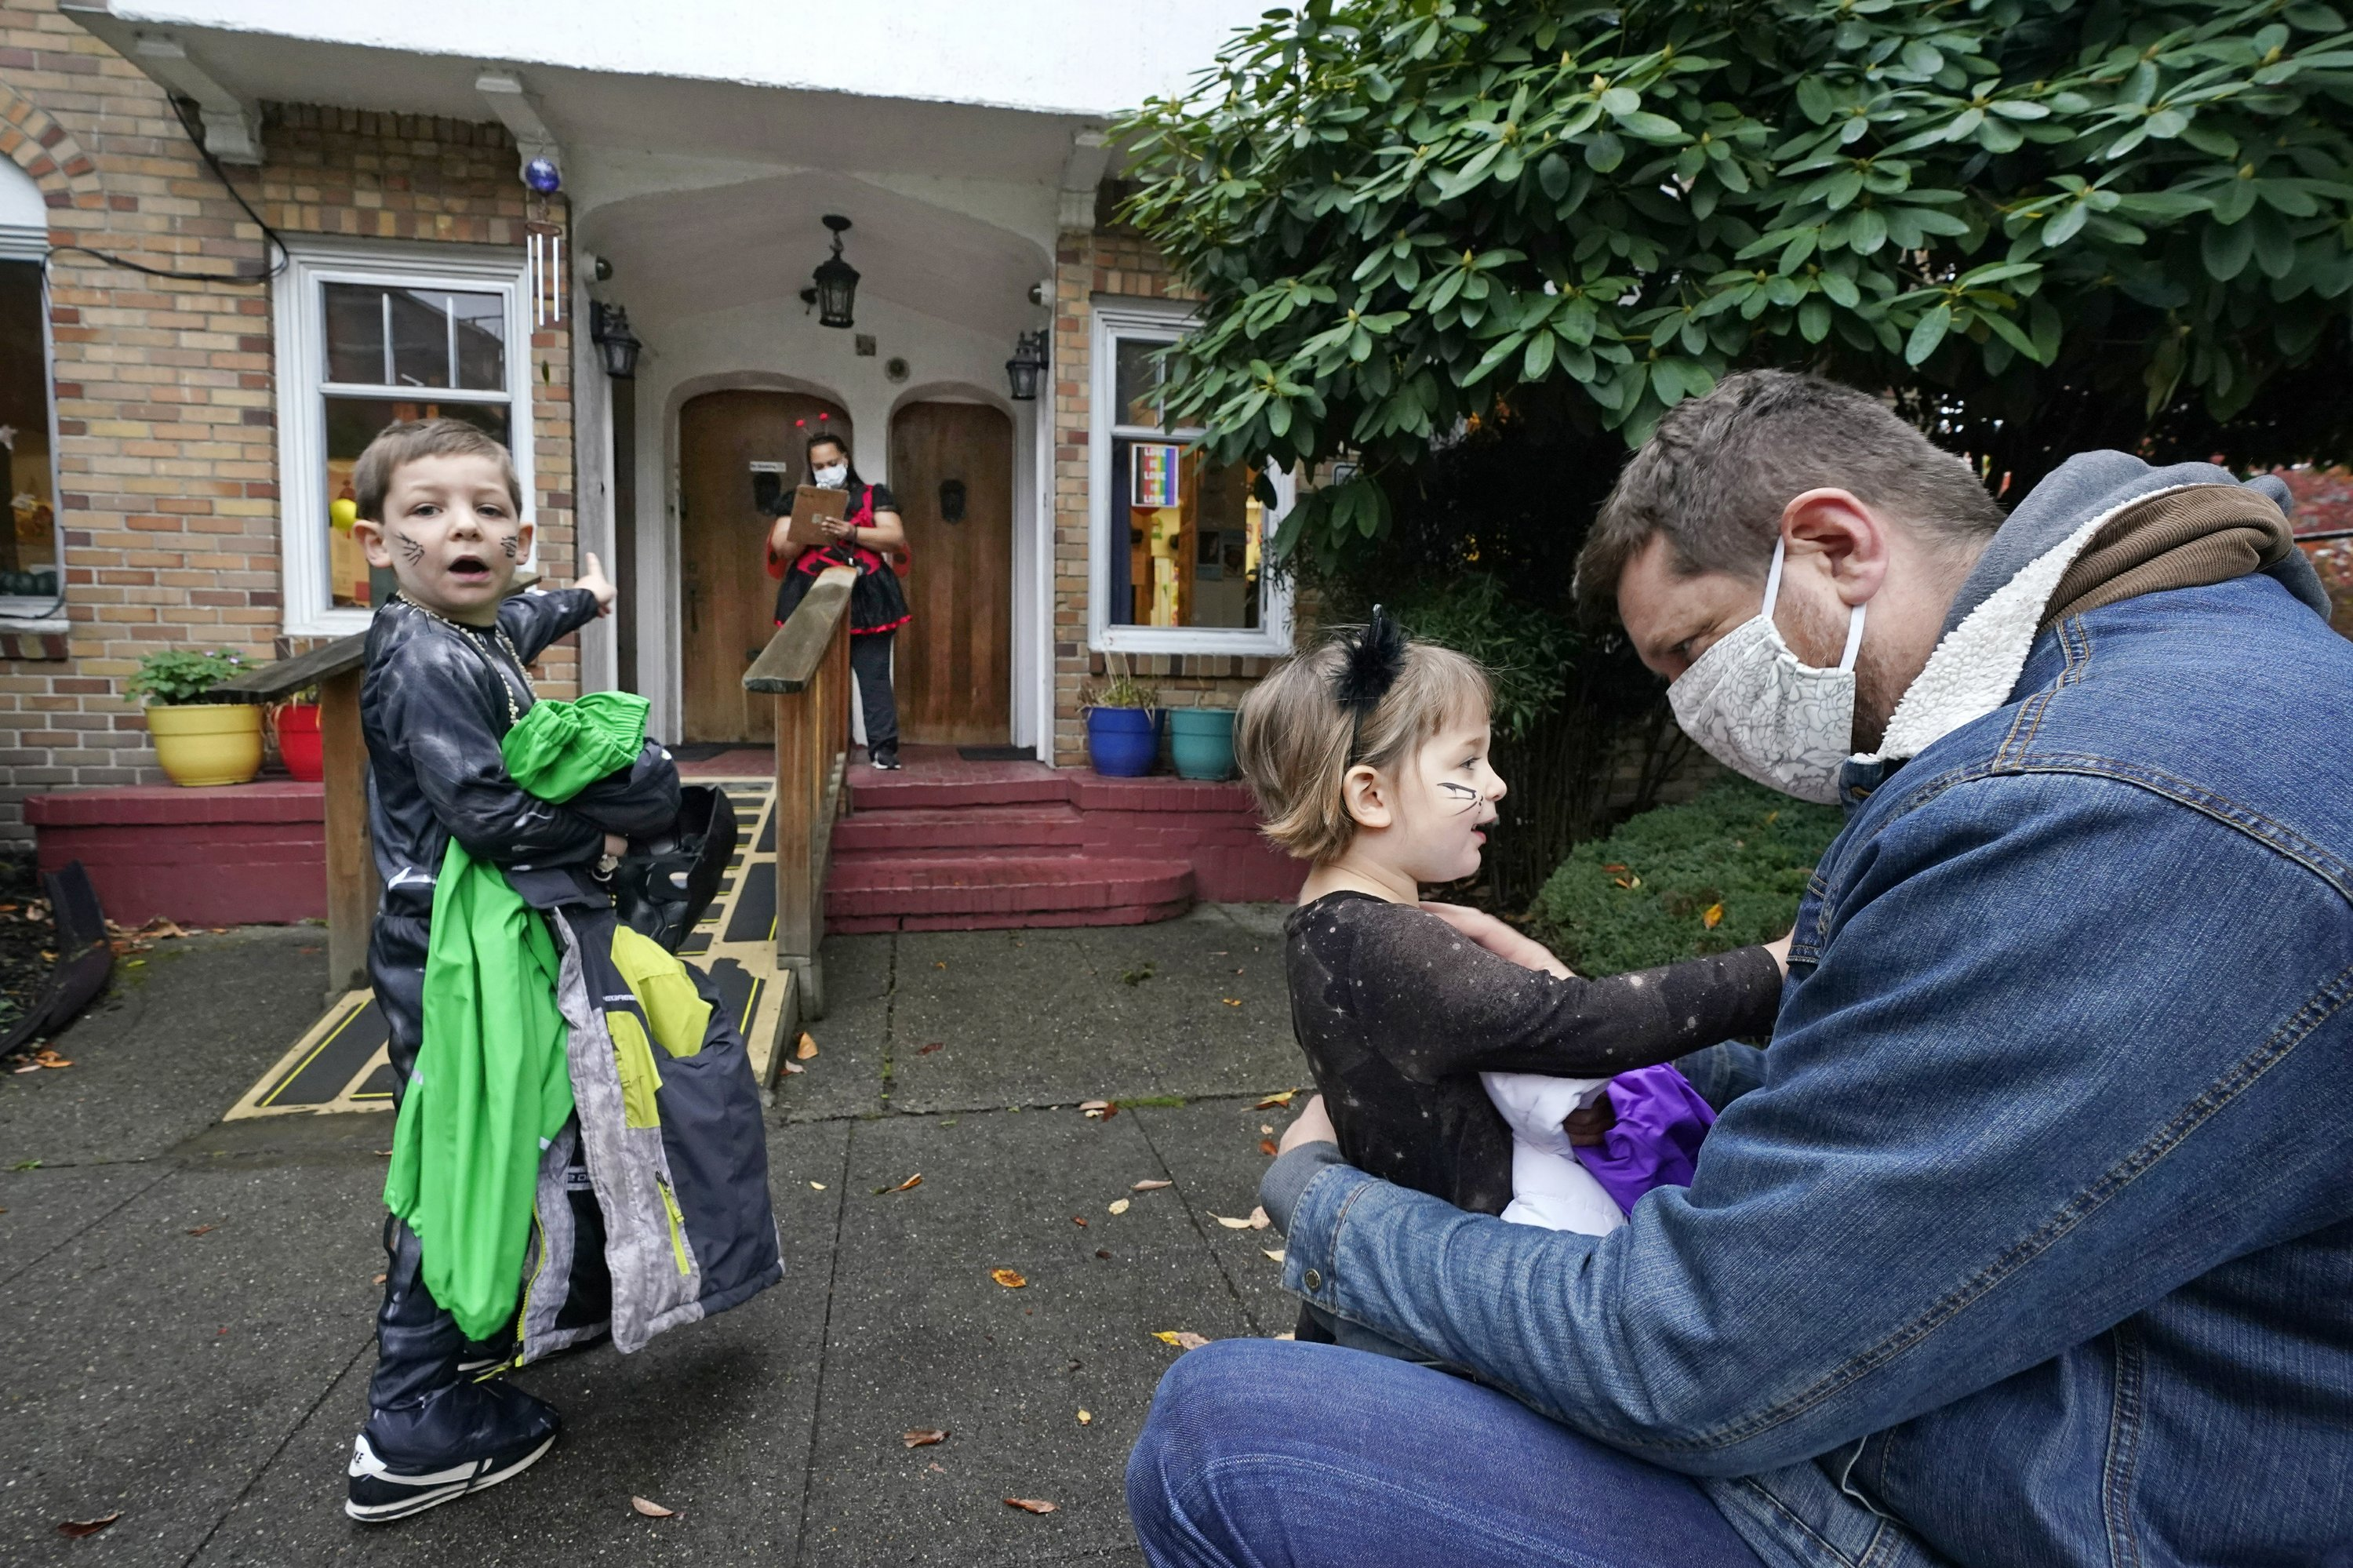 Families, day cares feel strain of new COVID-19 health rules